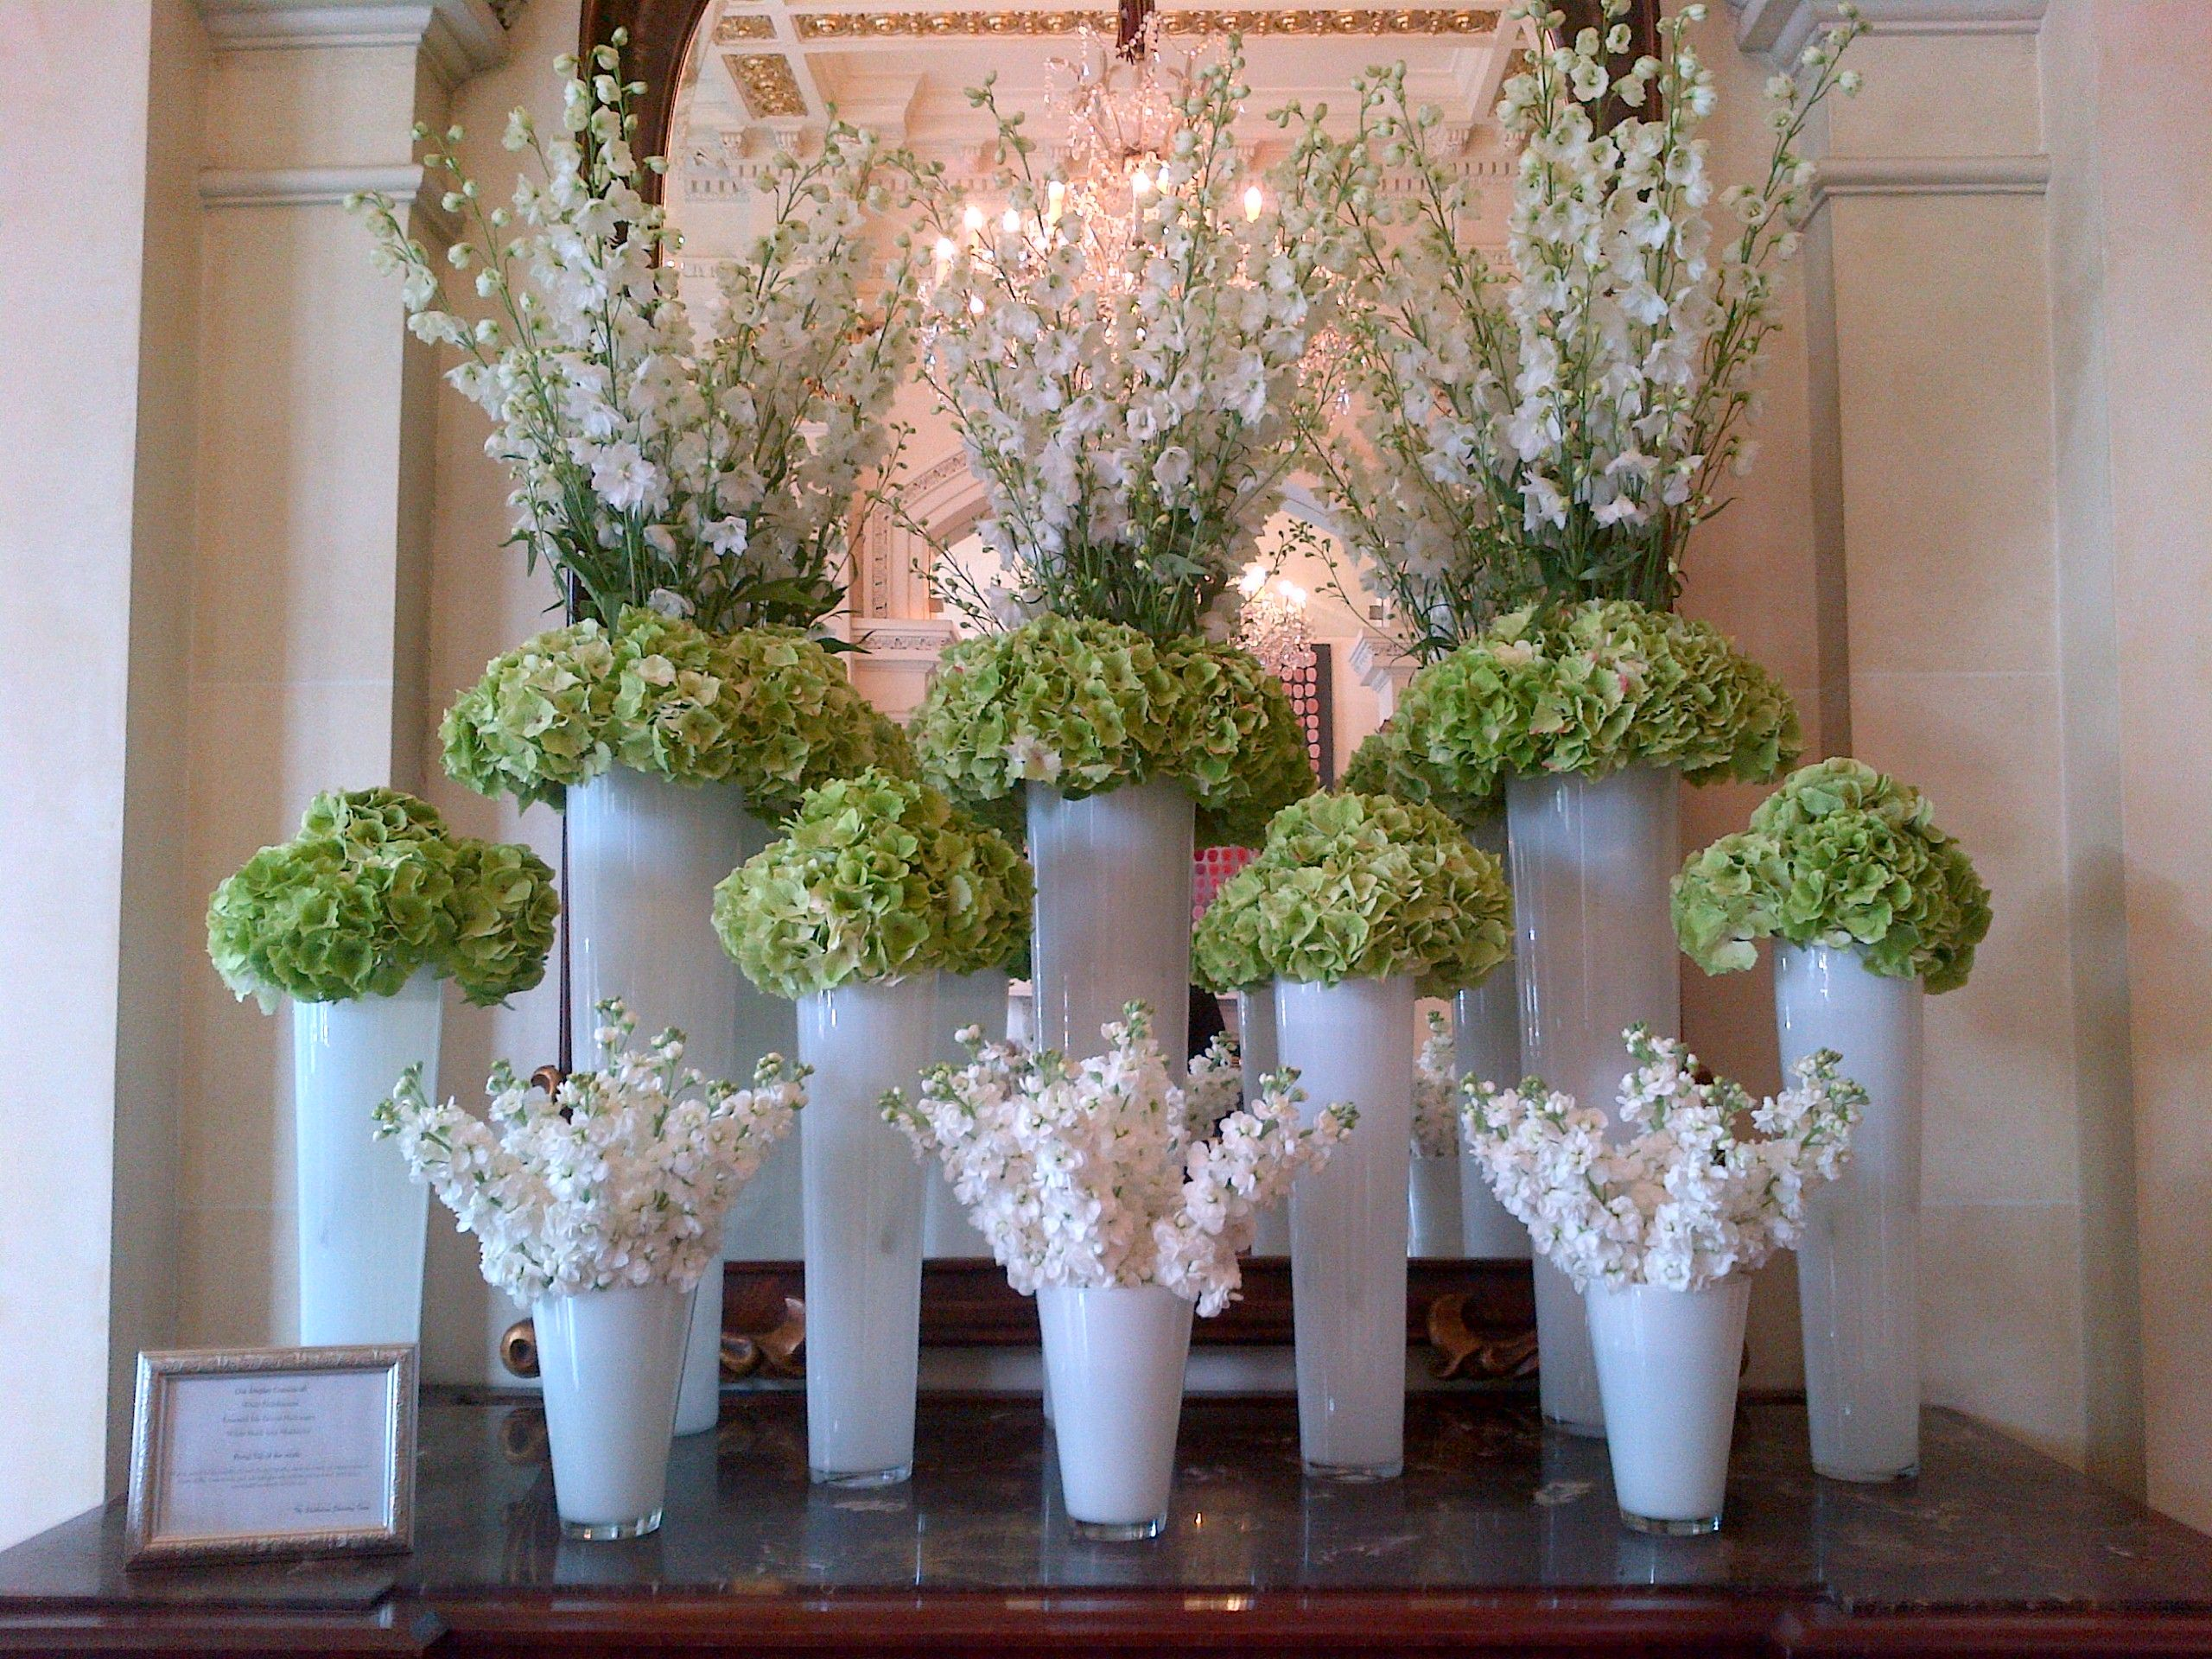 Hotel Foyer Flower Arrangements : Green and white hotel lobby display delphinium